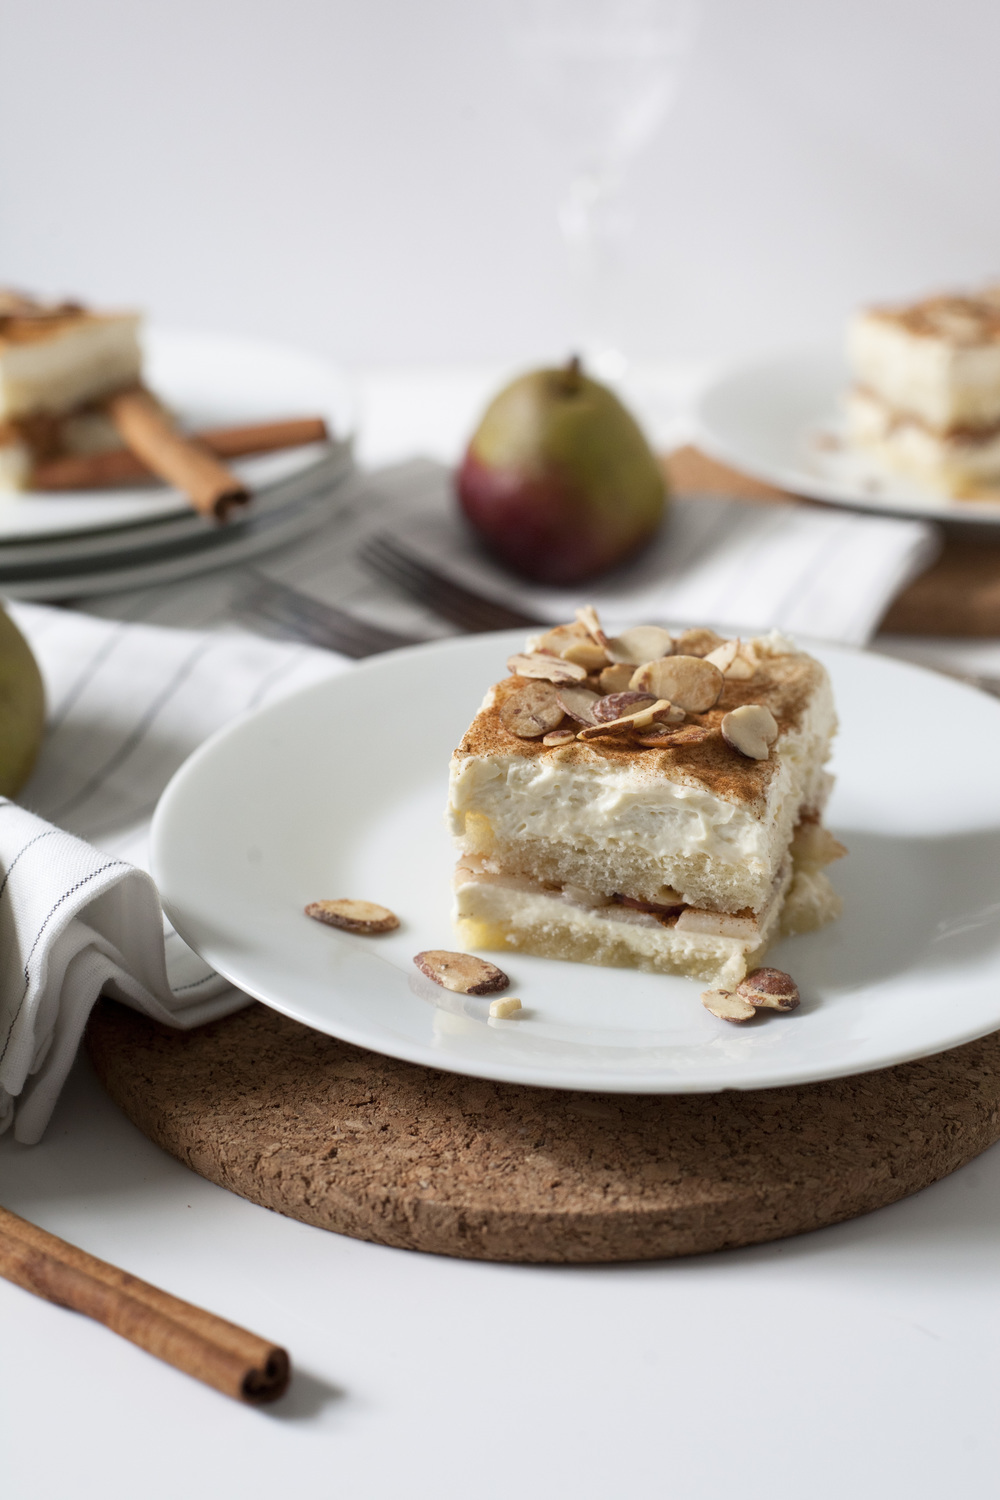 Winter Pear Almond and Honey Tiramisu Cake